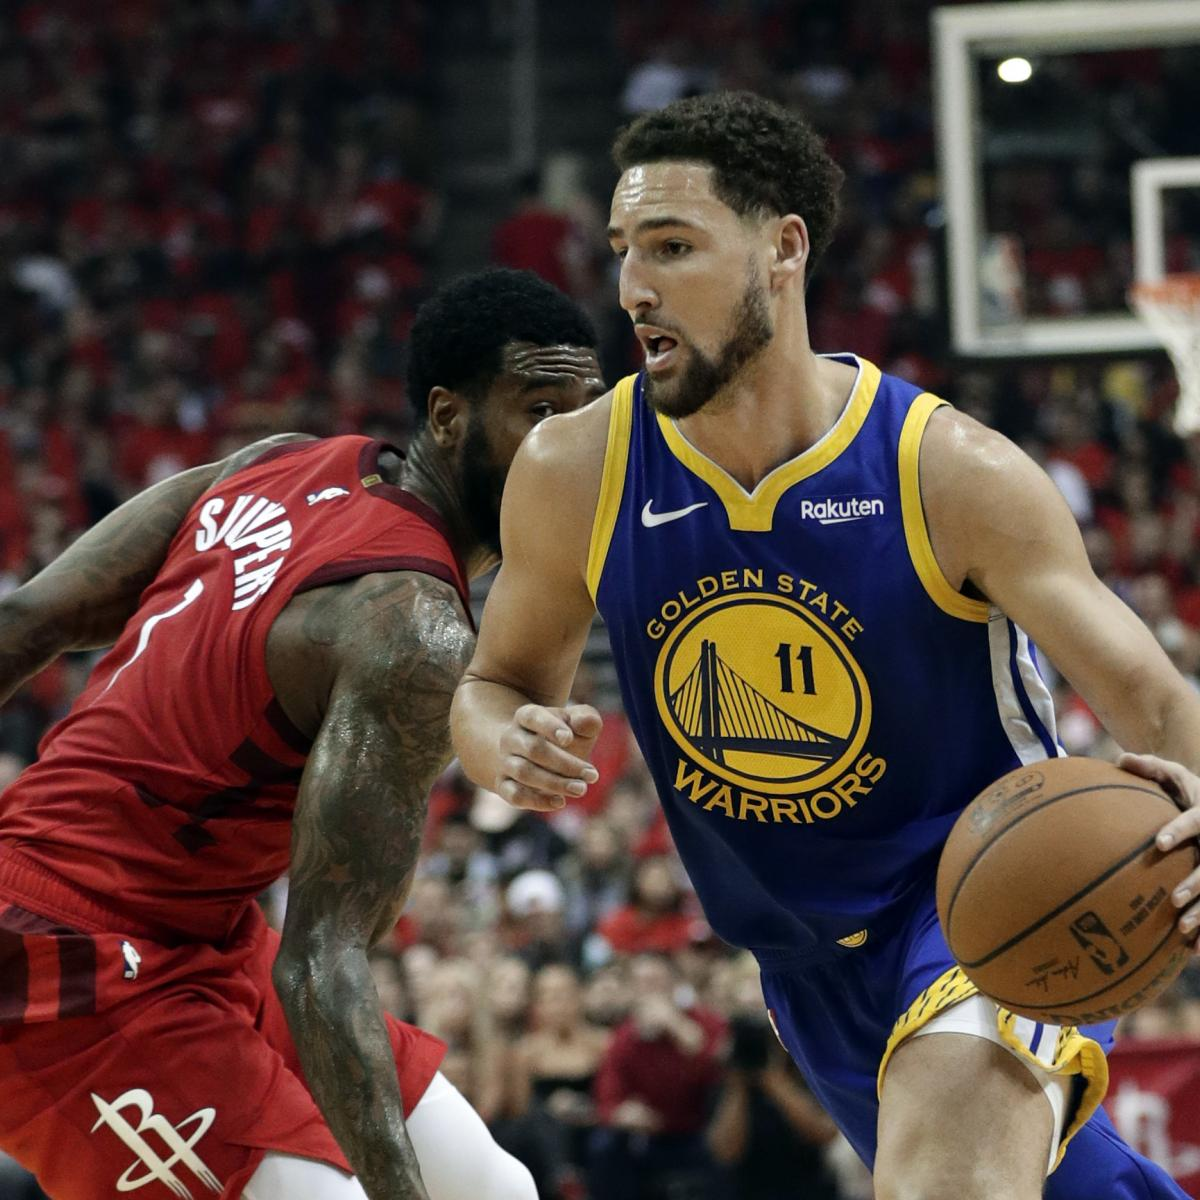 Warriors Come Out To Play Bleacher Report: NBA Finals 2019: Championship Odds And Predictions For